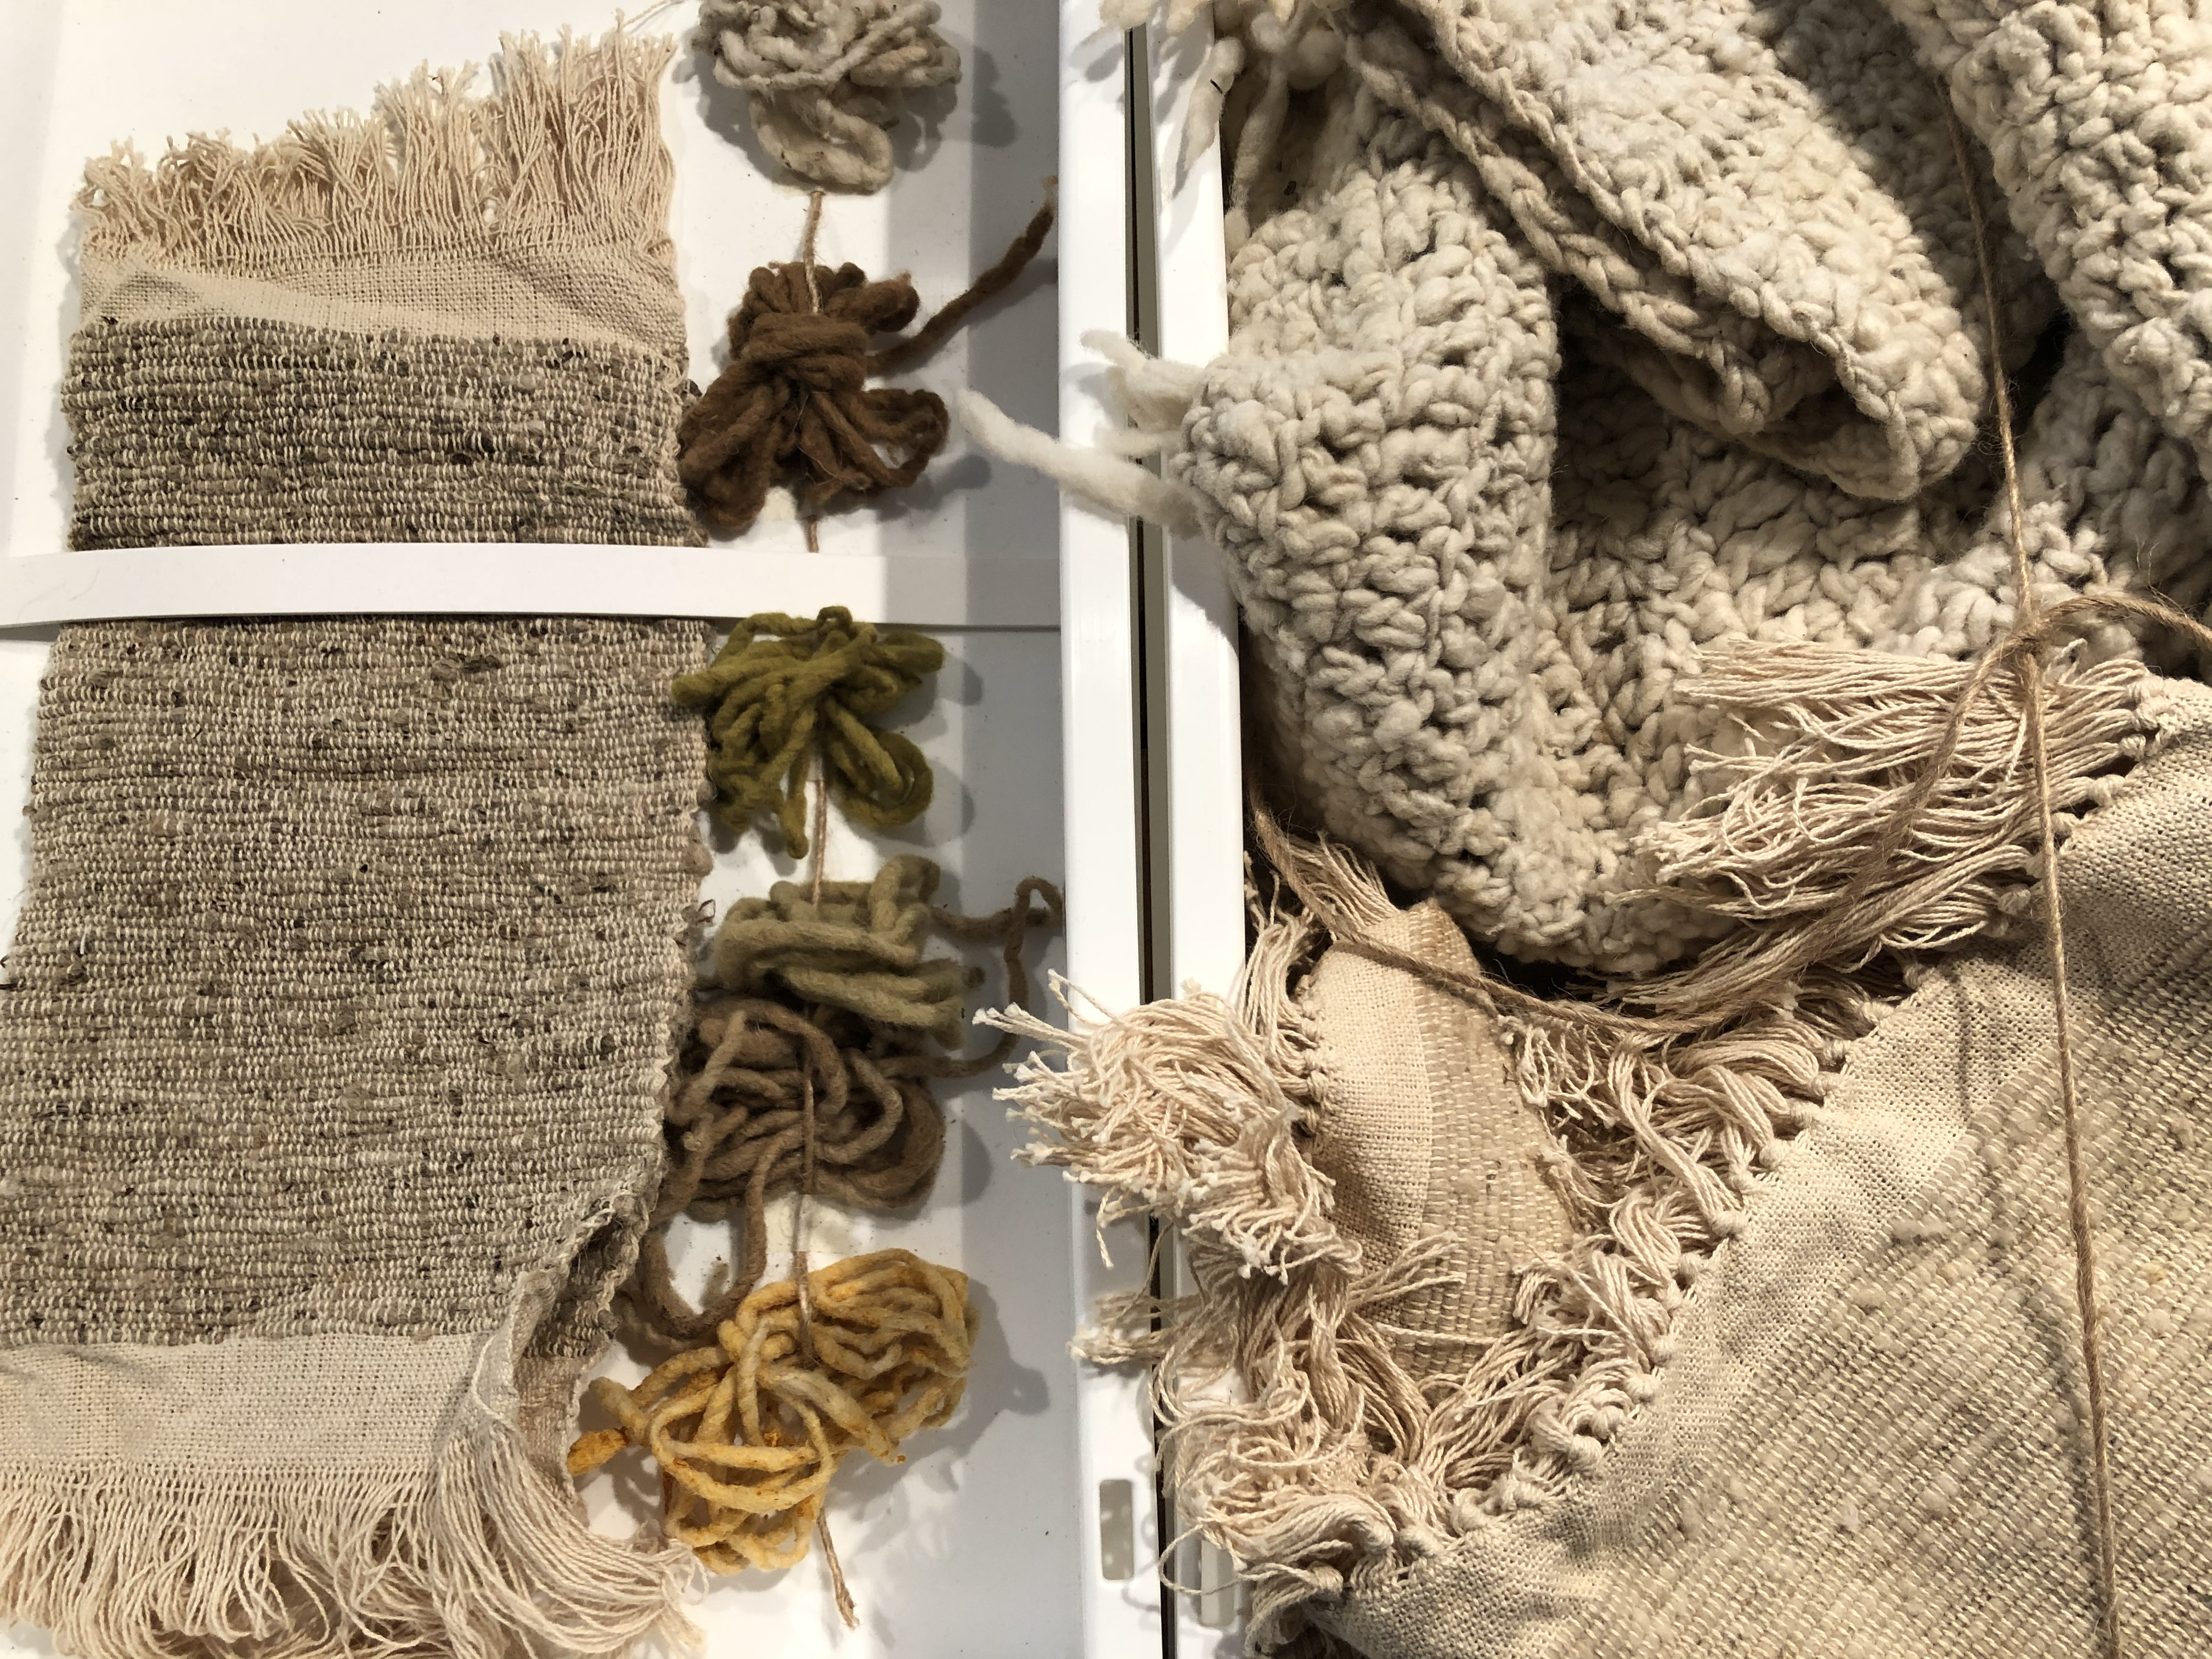 Future Materials Lab, Heimtextil 2020. At the Heimtextil home textiles show, material innovation alters fabric's future, tapping remade items, natural assets and bio materials.